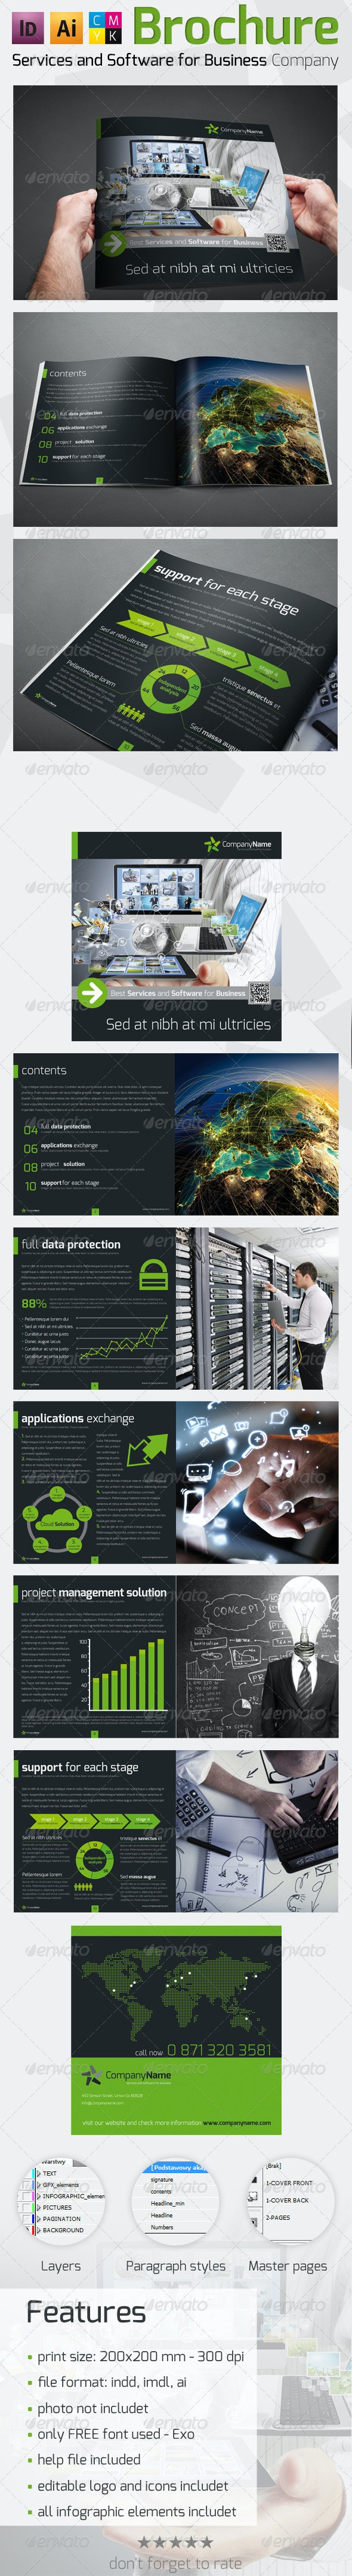 Solution and Software Brochure - Corporate Brochures